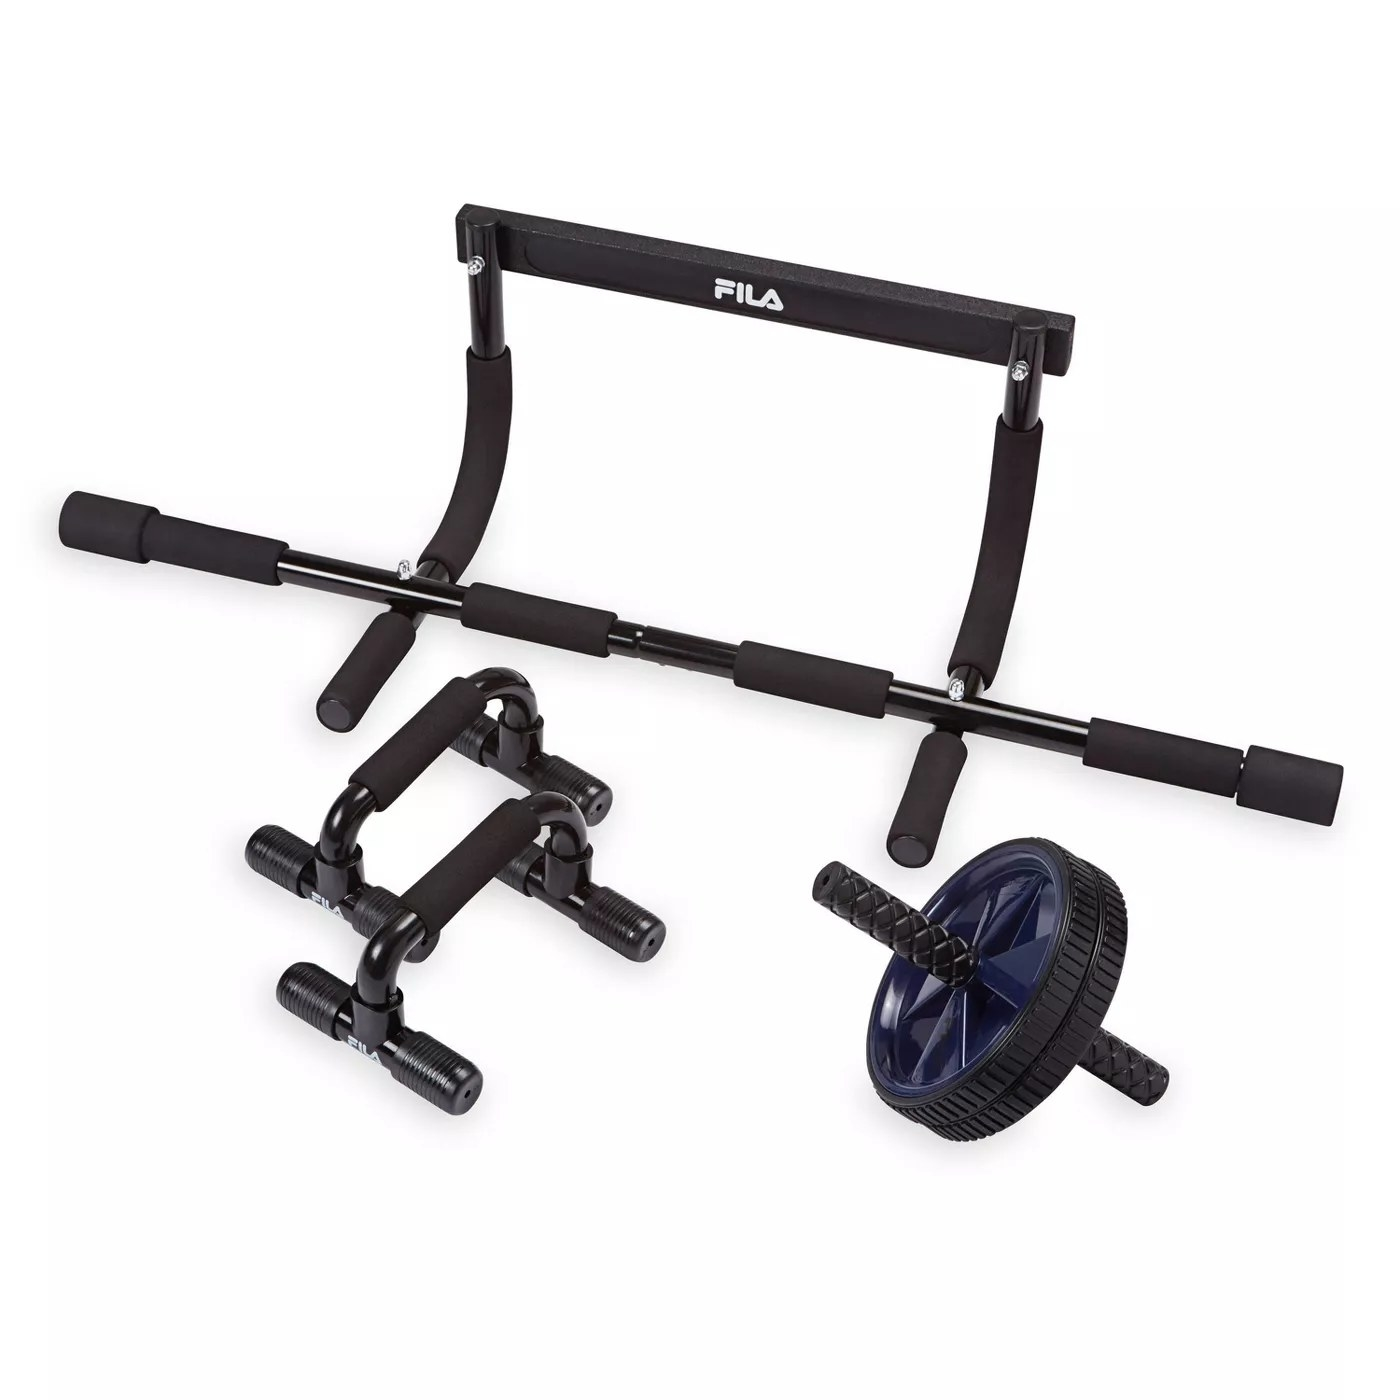 A pull-up bar, push-up handles, and an ab wheel